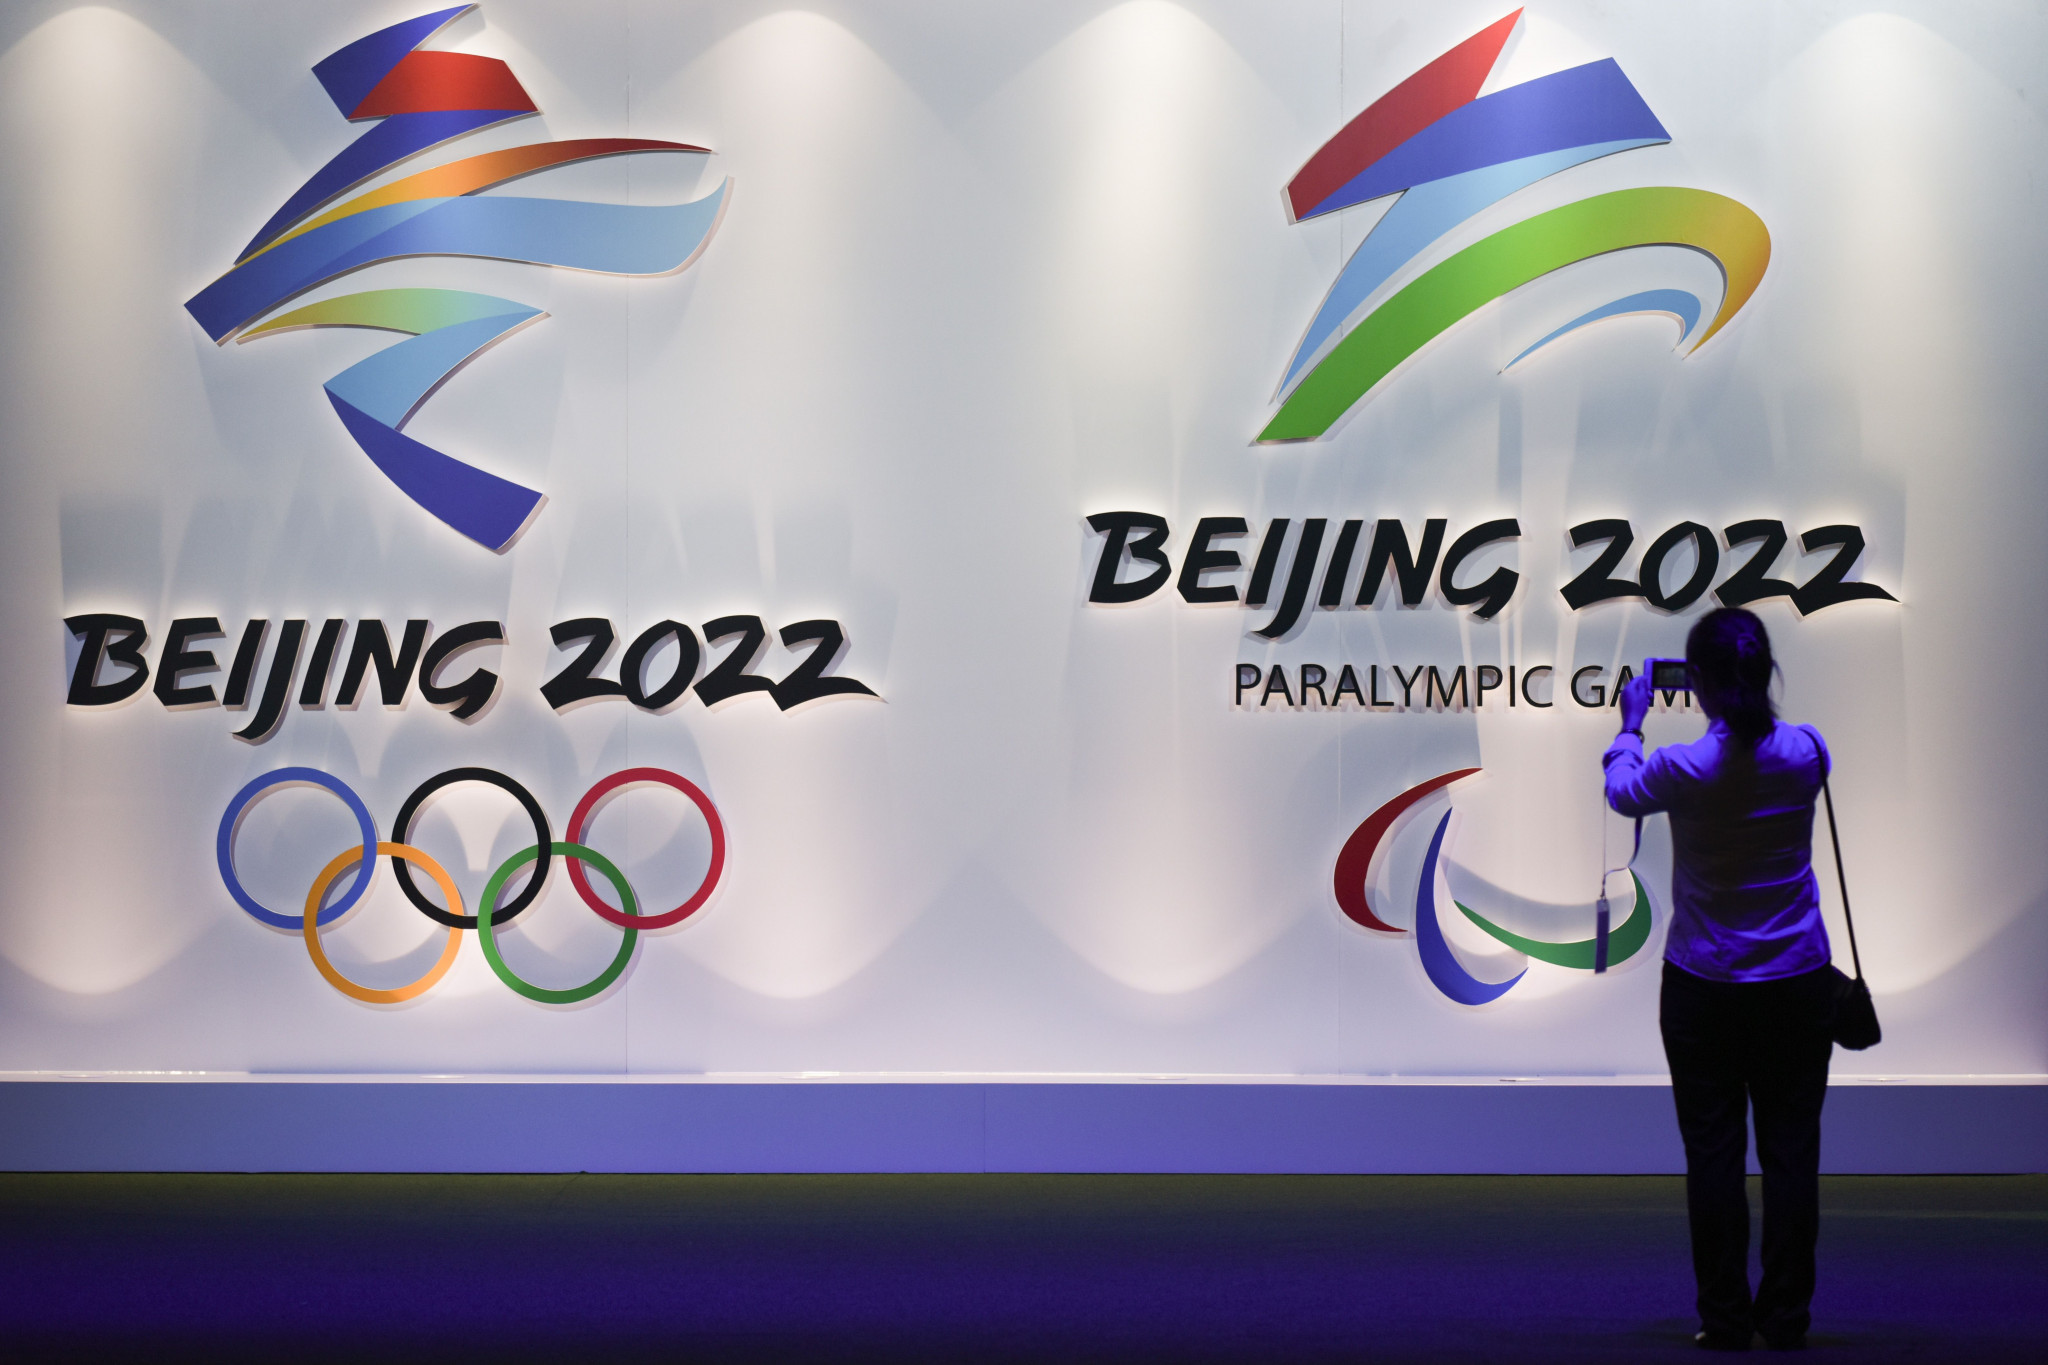 Beijing 2022 launch medal and Torch design competition